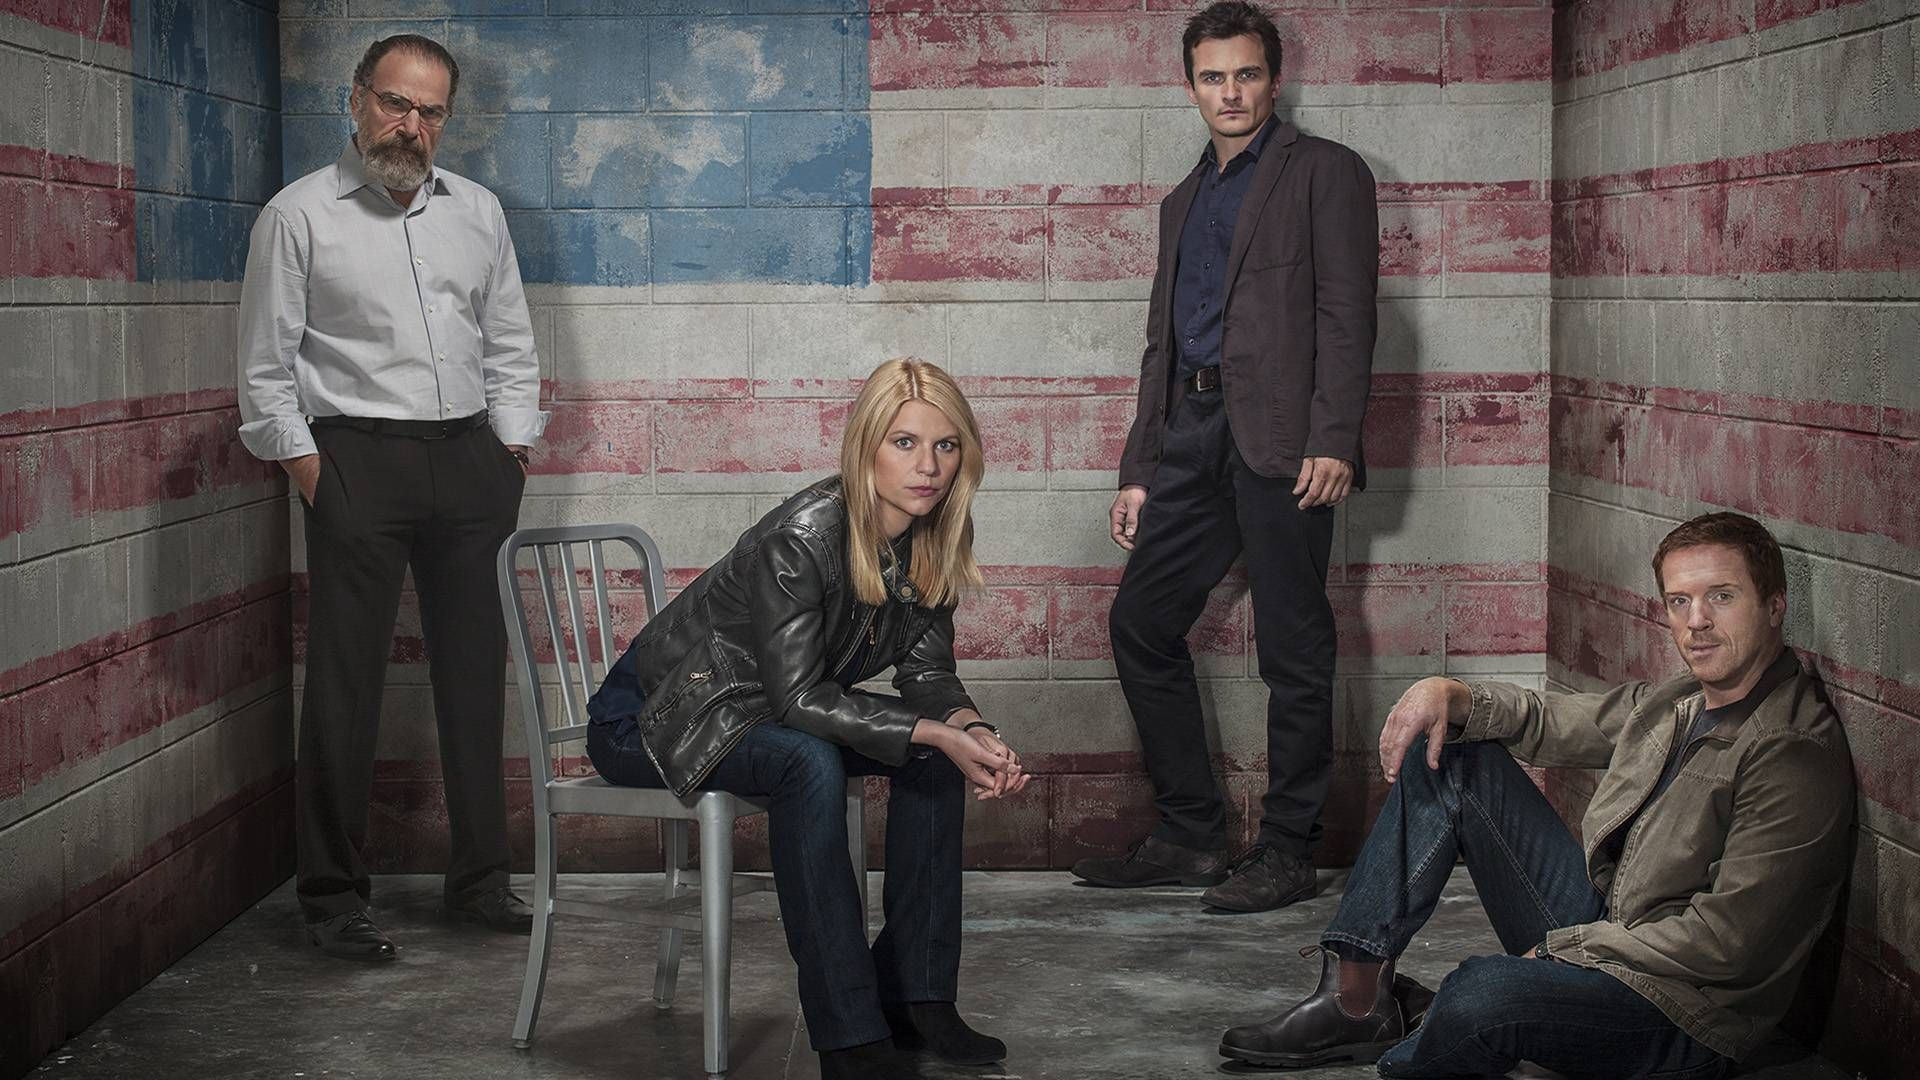 Pin By Todd Jacobs On T W J 1964 Homeland Tv Series Homeland Season Homeland Series